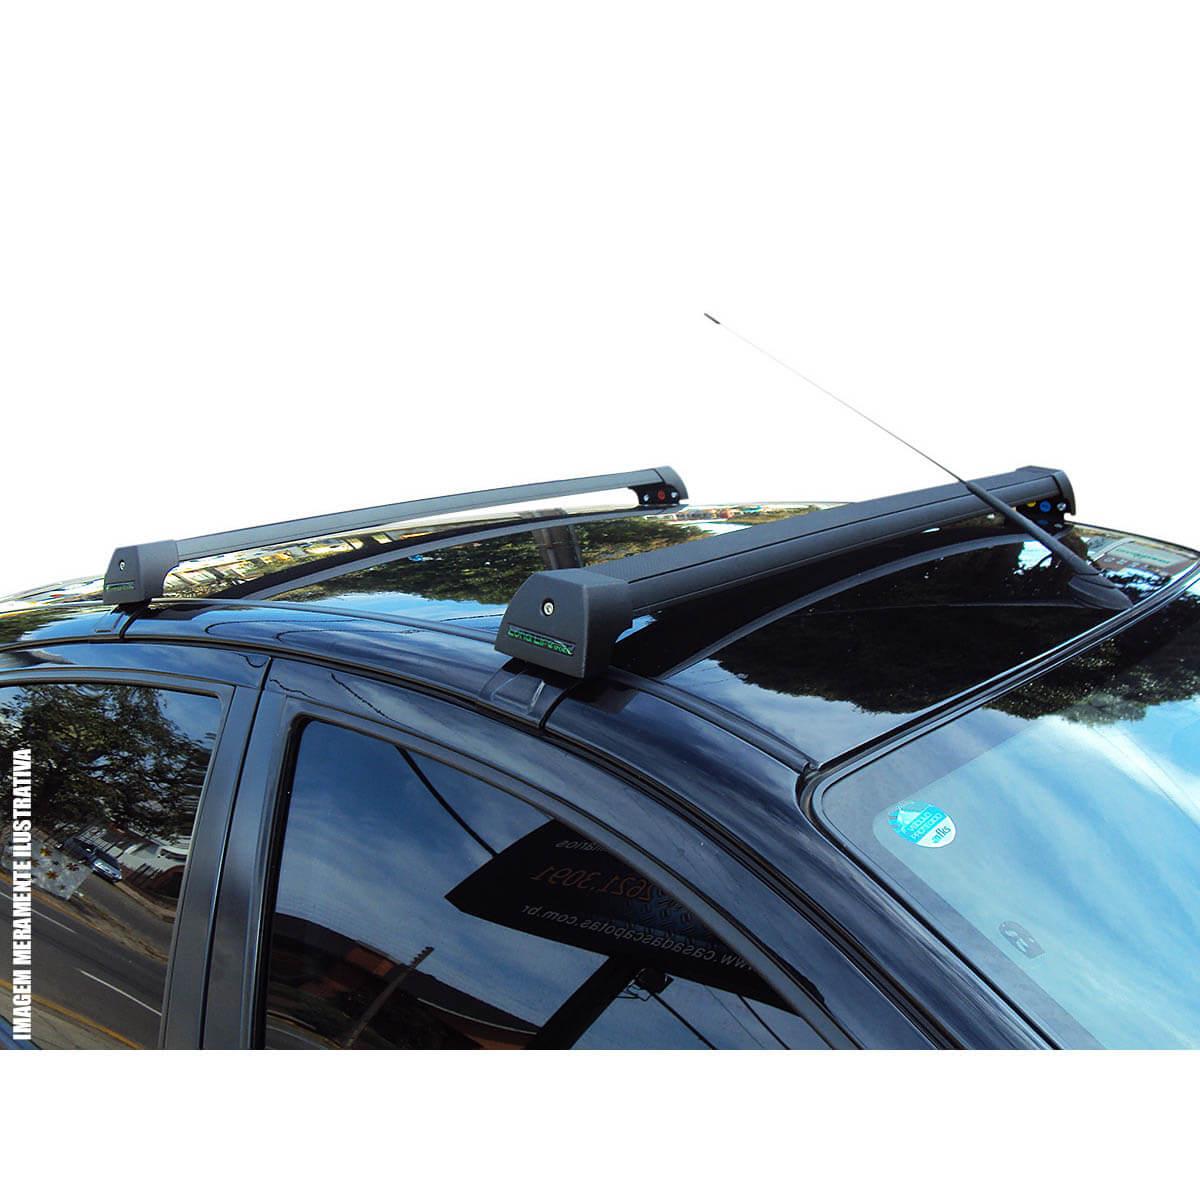 Rack de teto Mercedes Classe A 1999 a 2005 Long Life Sports preto